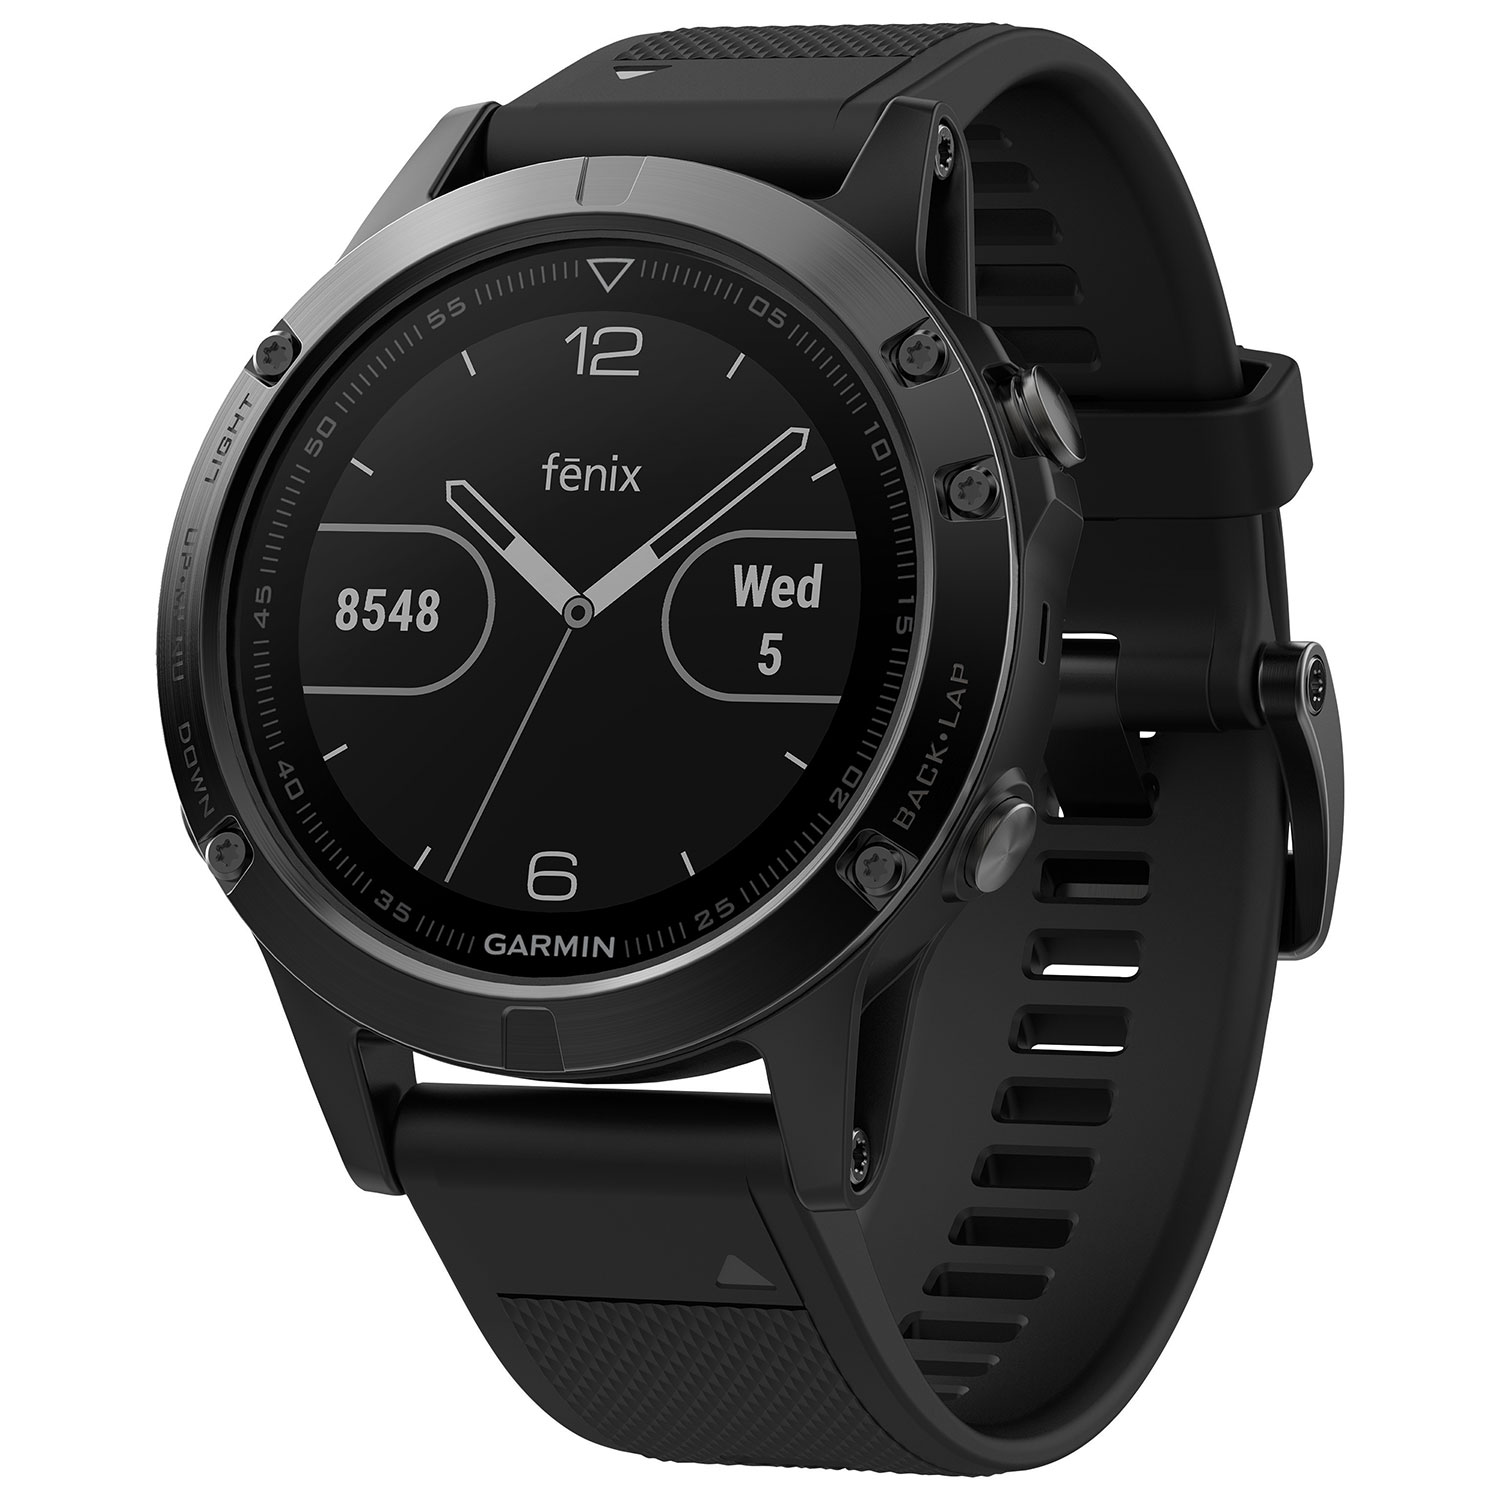 rip black curl amazon dp gps searchgps in watches outdoors watch sports uk smart surf co